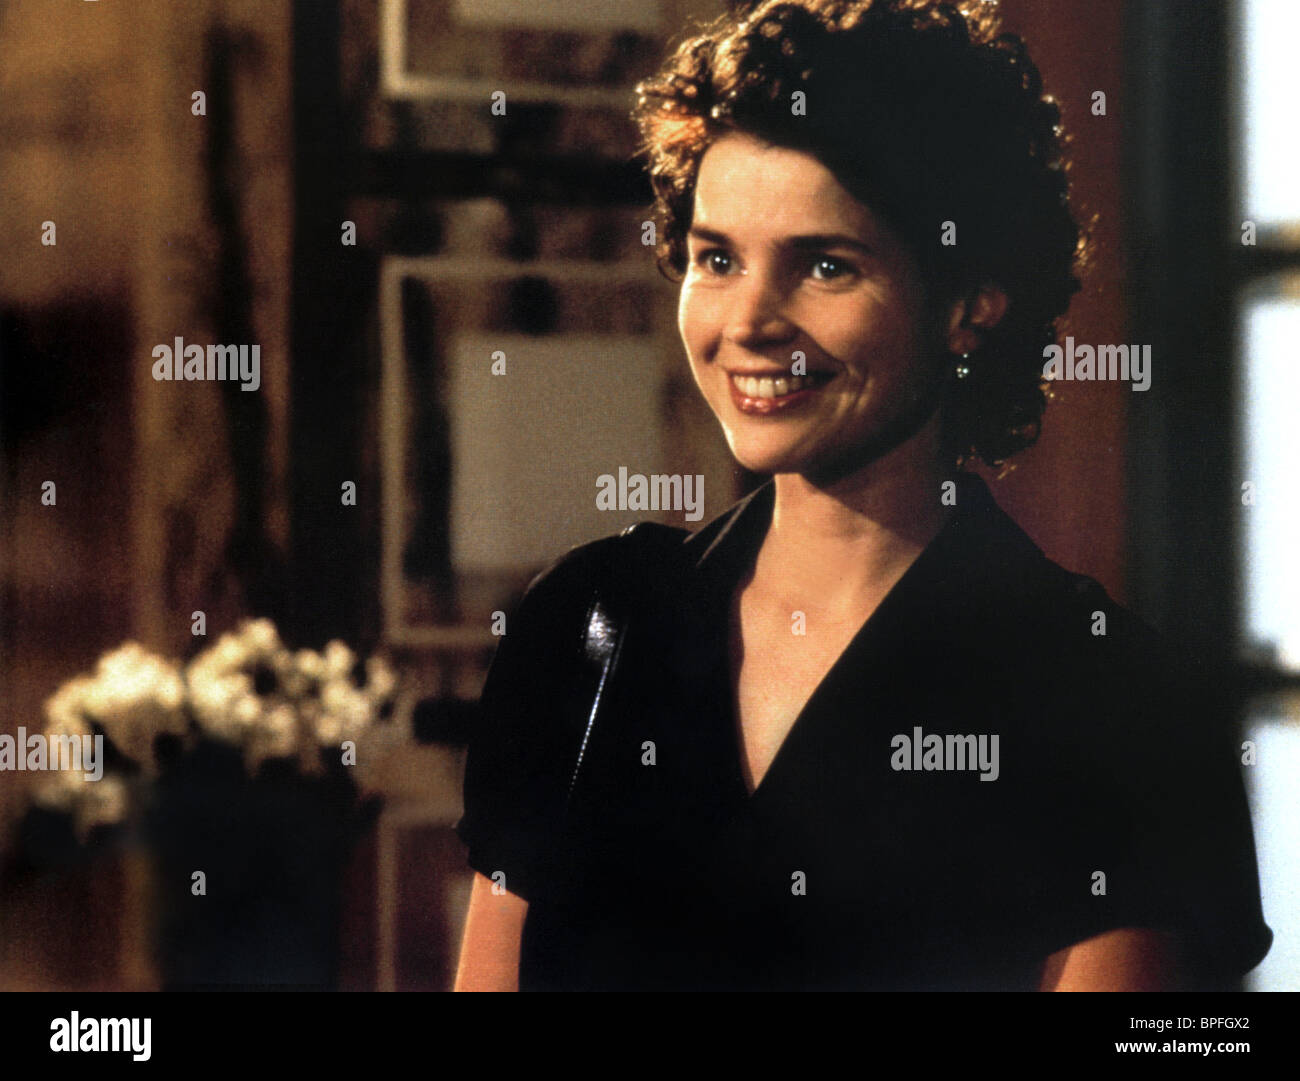 Julia Ormond Immagini julia ormond immagini & julia ormond fotos stock - alamy